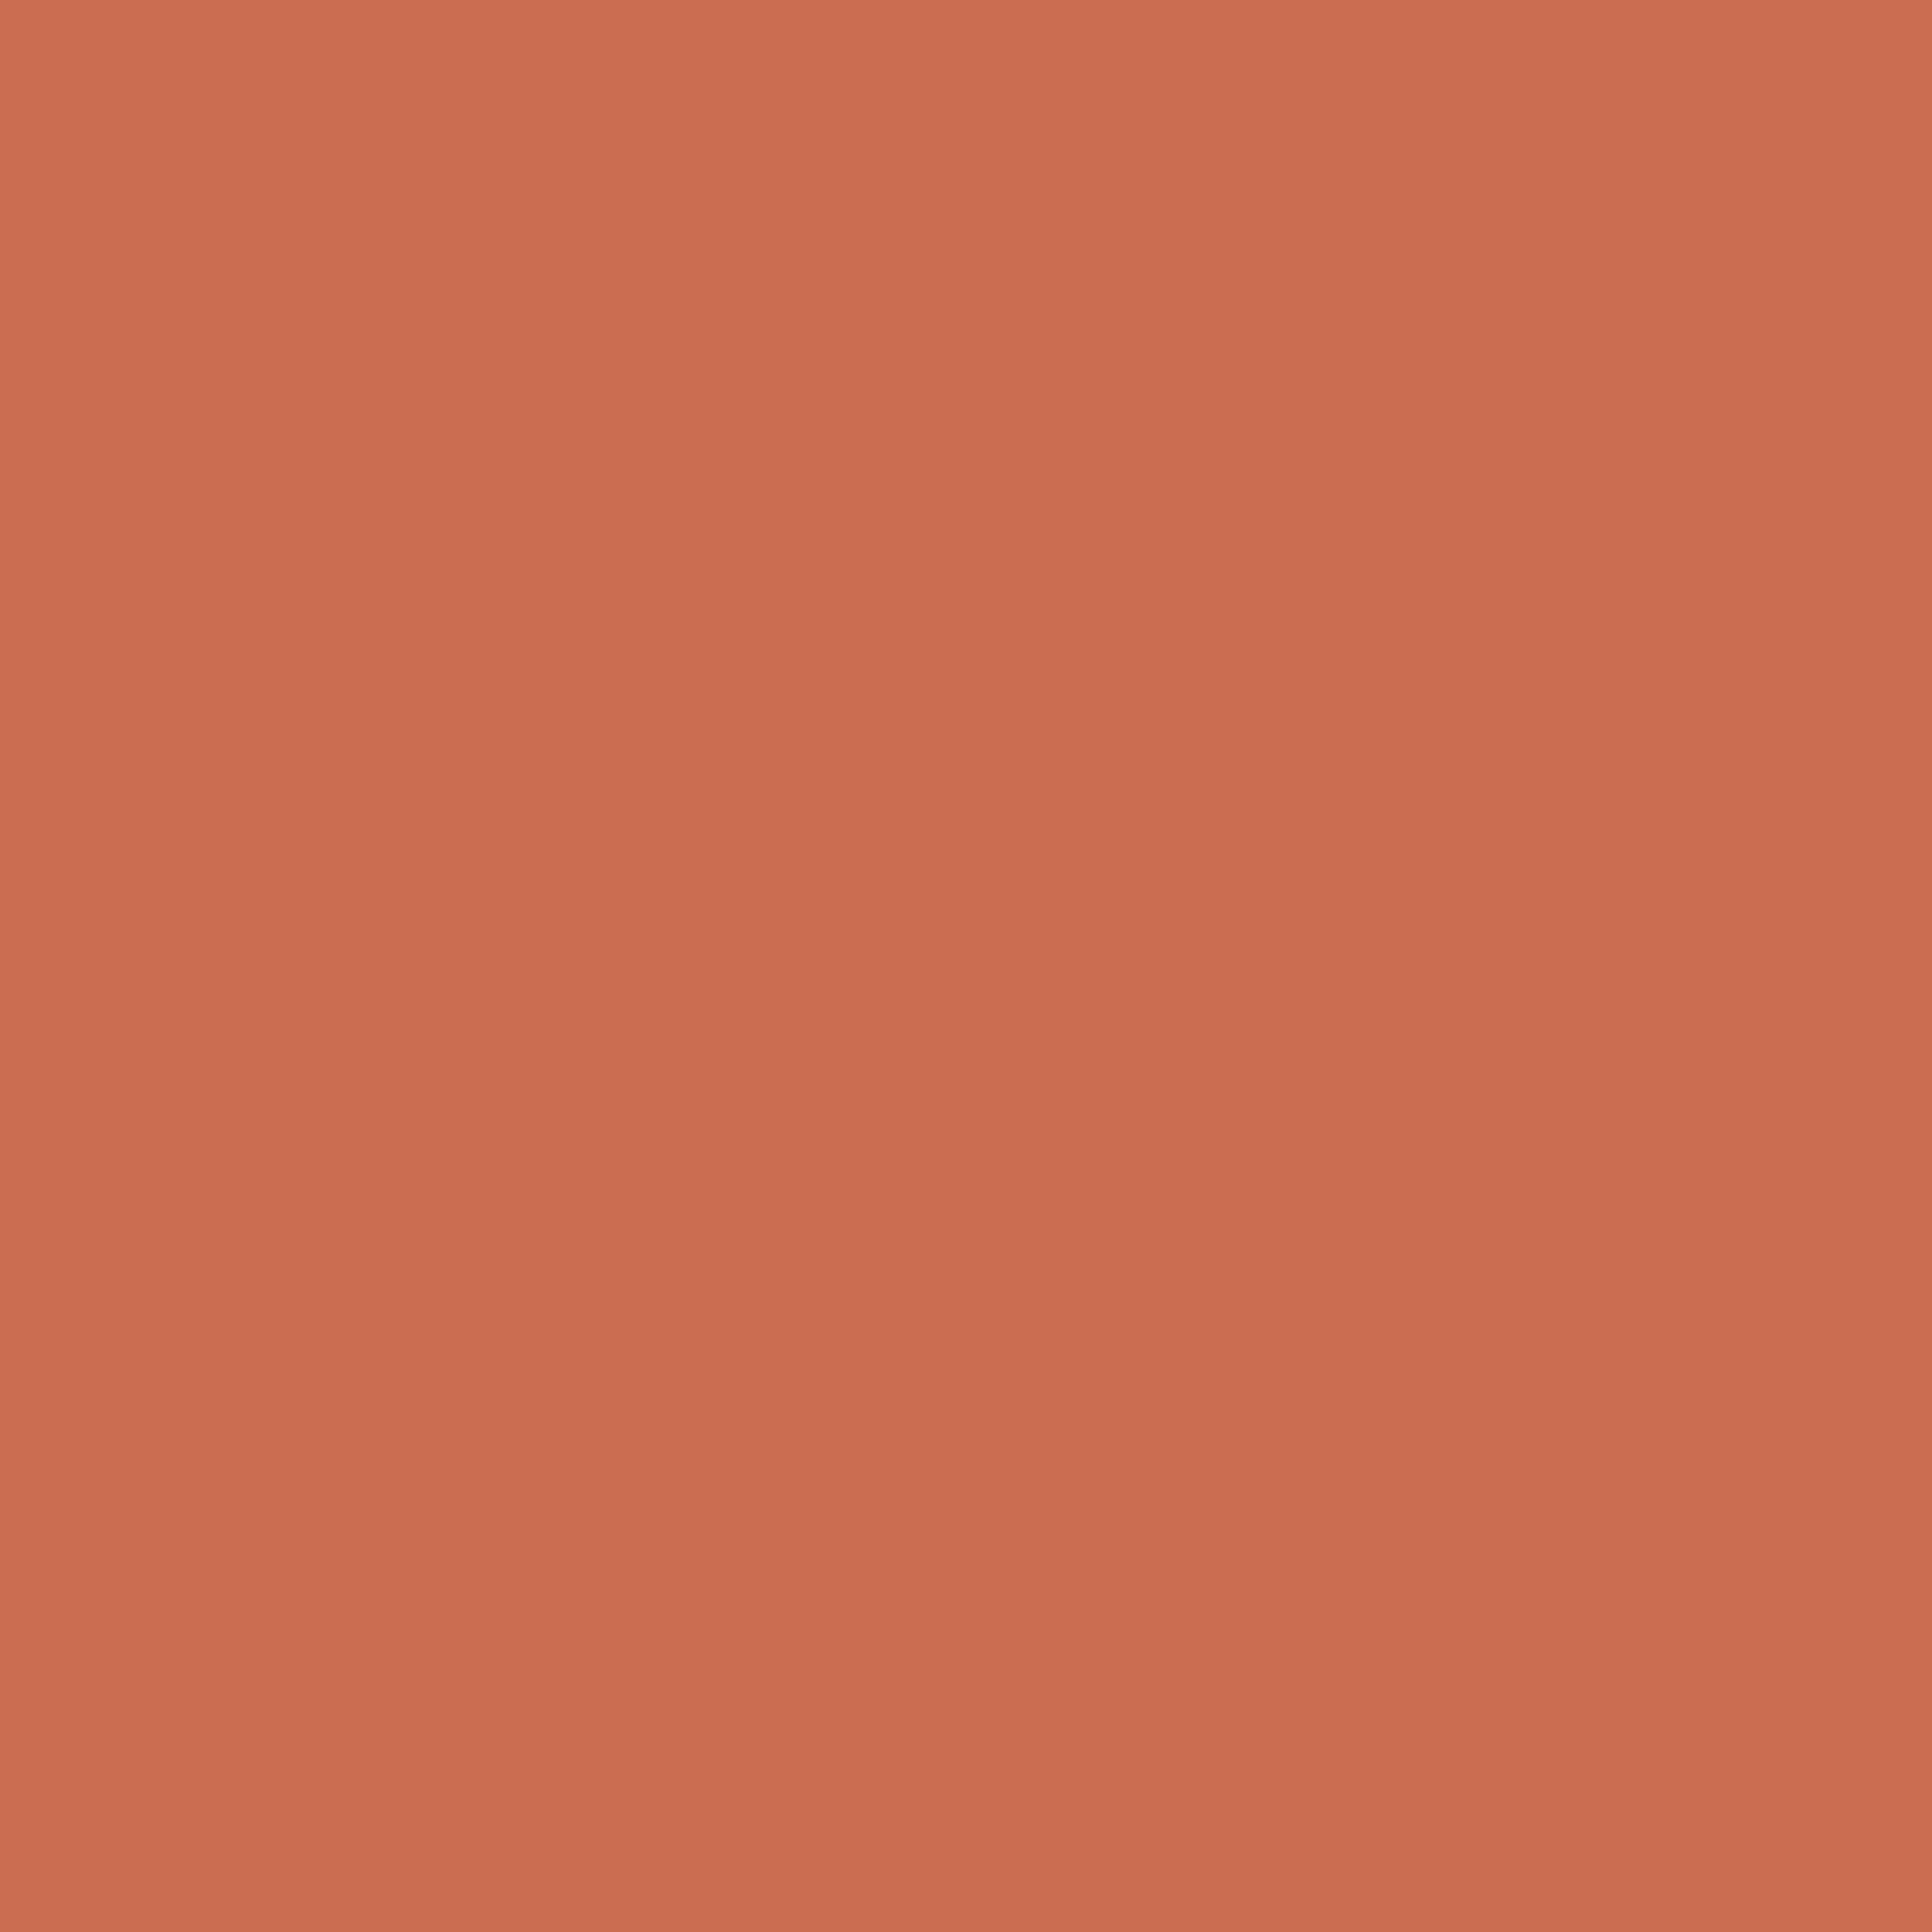 2732x2732 Copper Red Solid Color Background